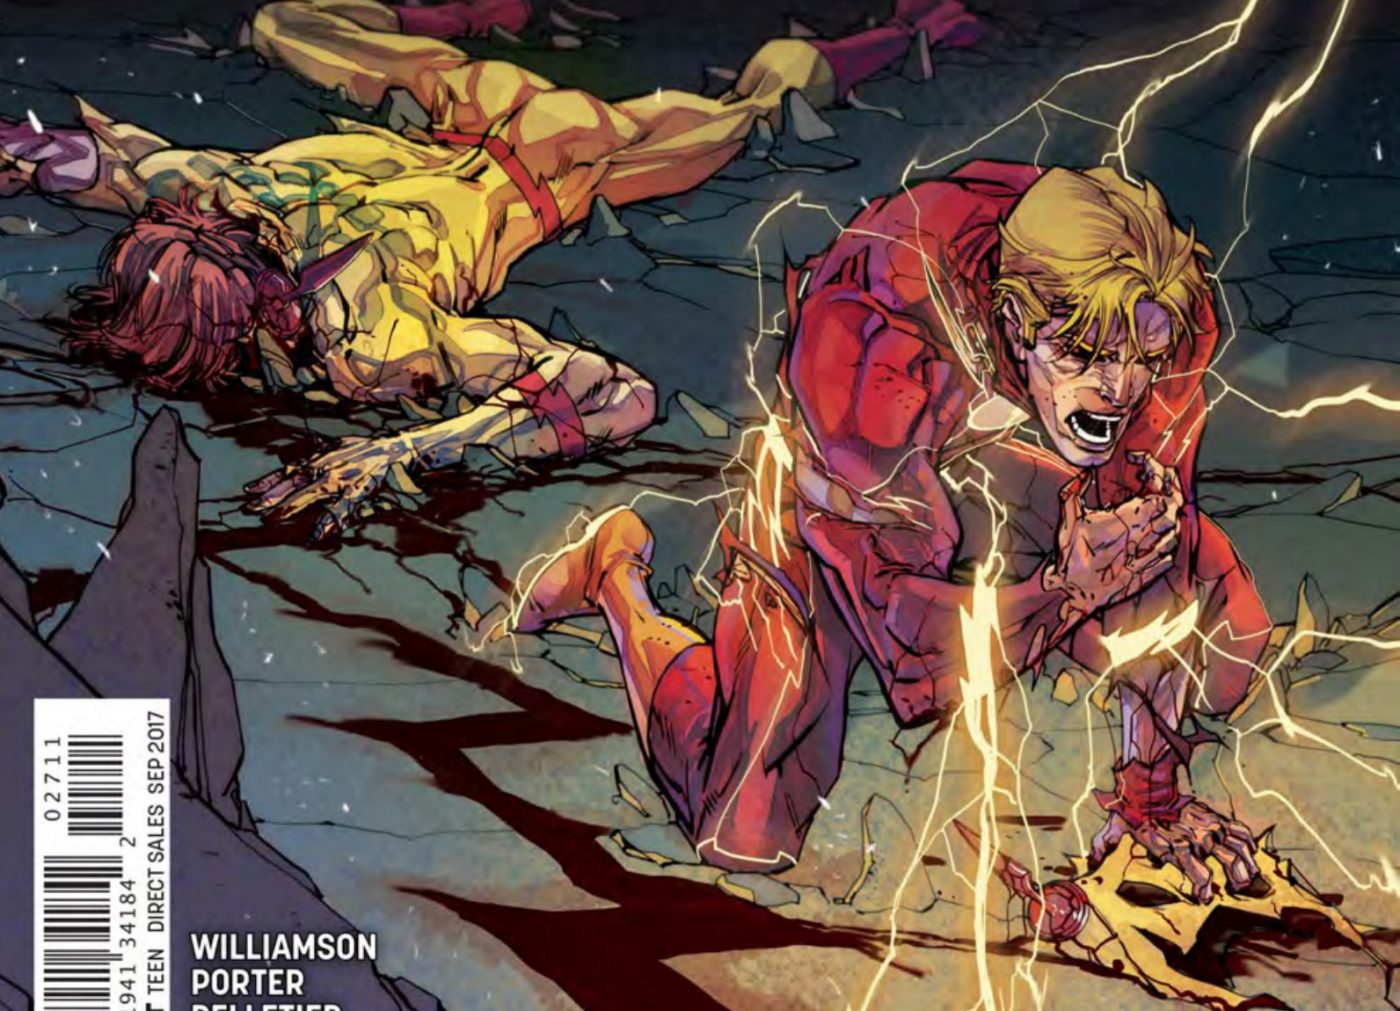 SDCC 2017: A chat with Flash writer Joshua Williamson about 'Metal', Flash and more!